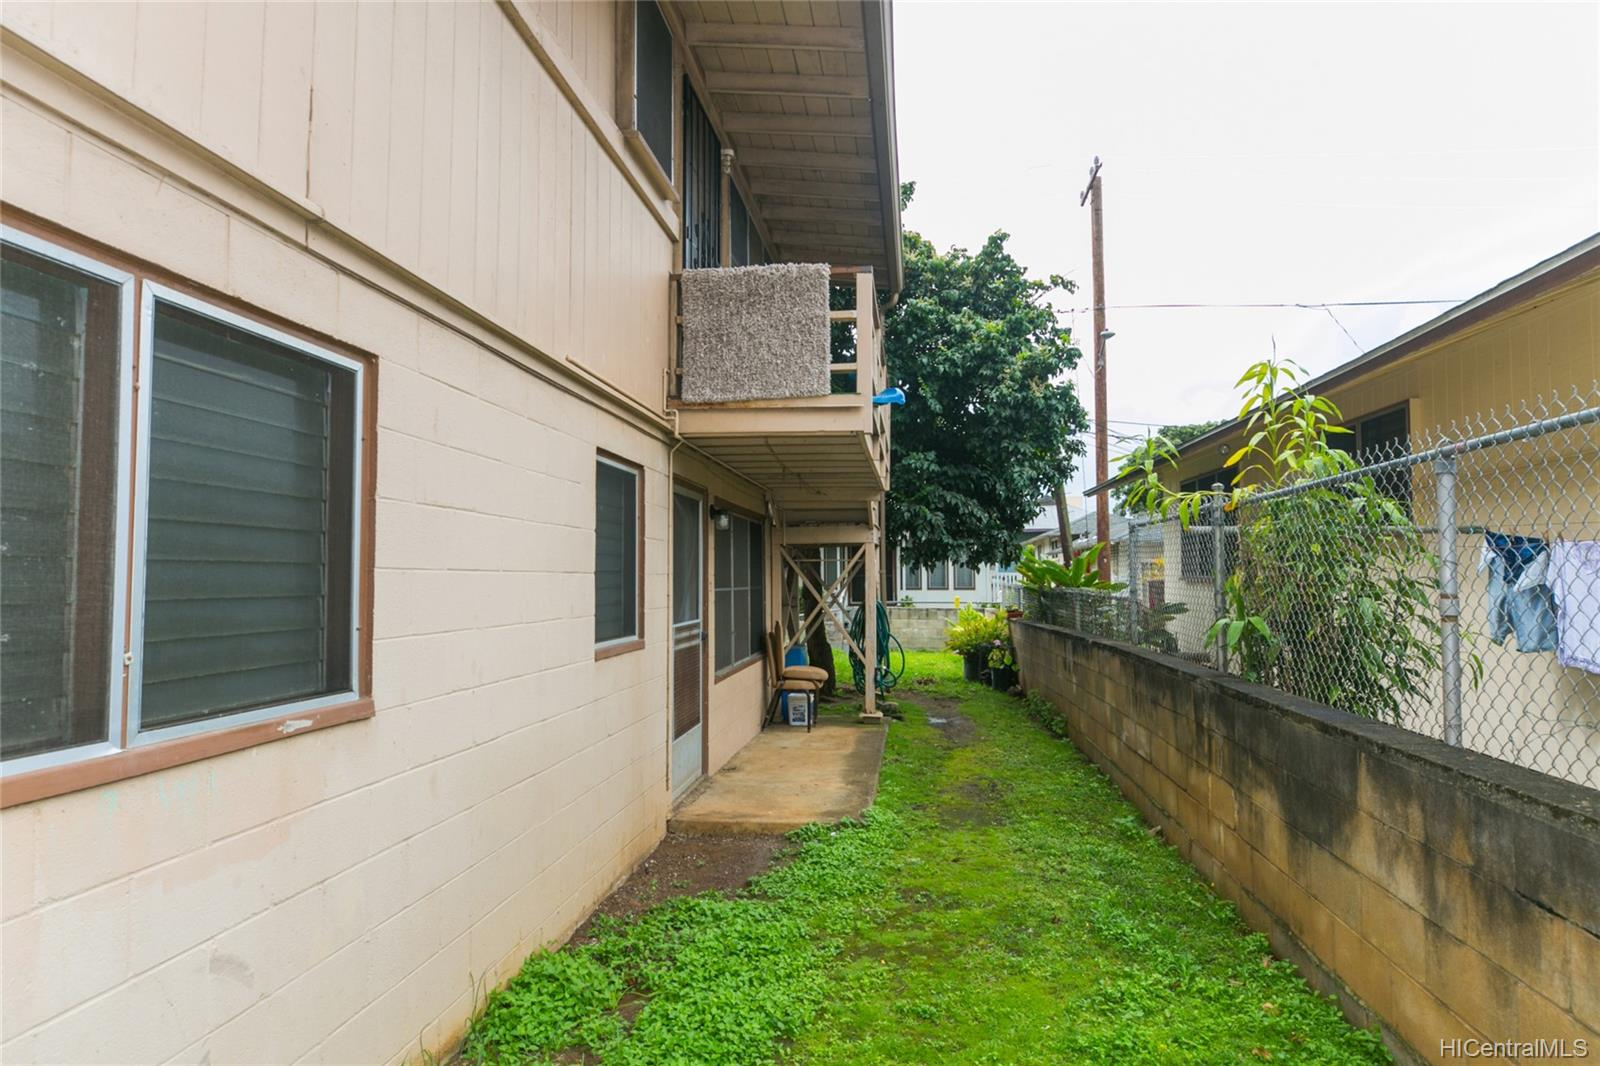 14 Kauila Street Honolulu - Multi-family - photo 16 of 20